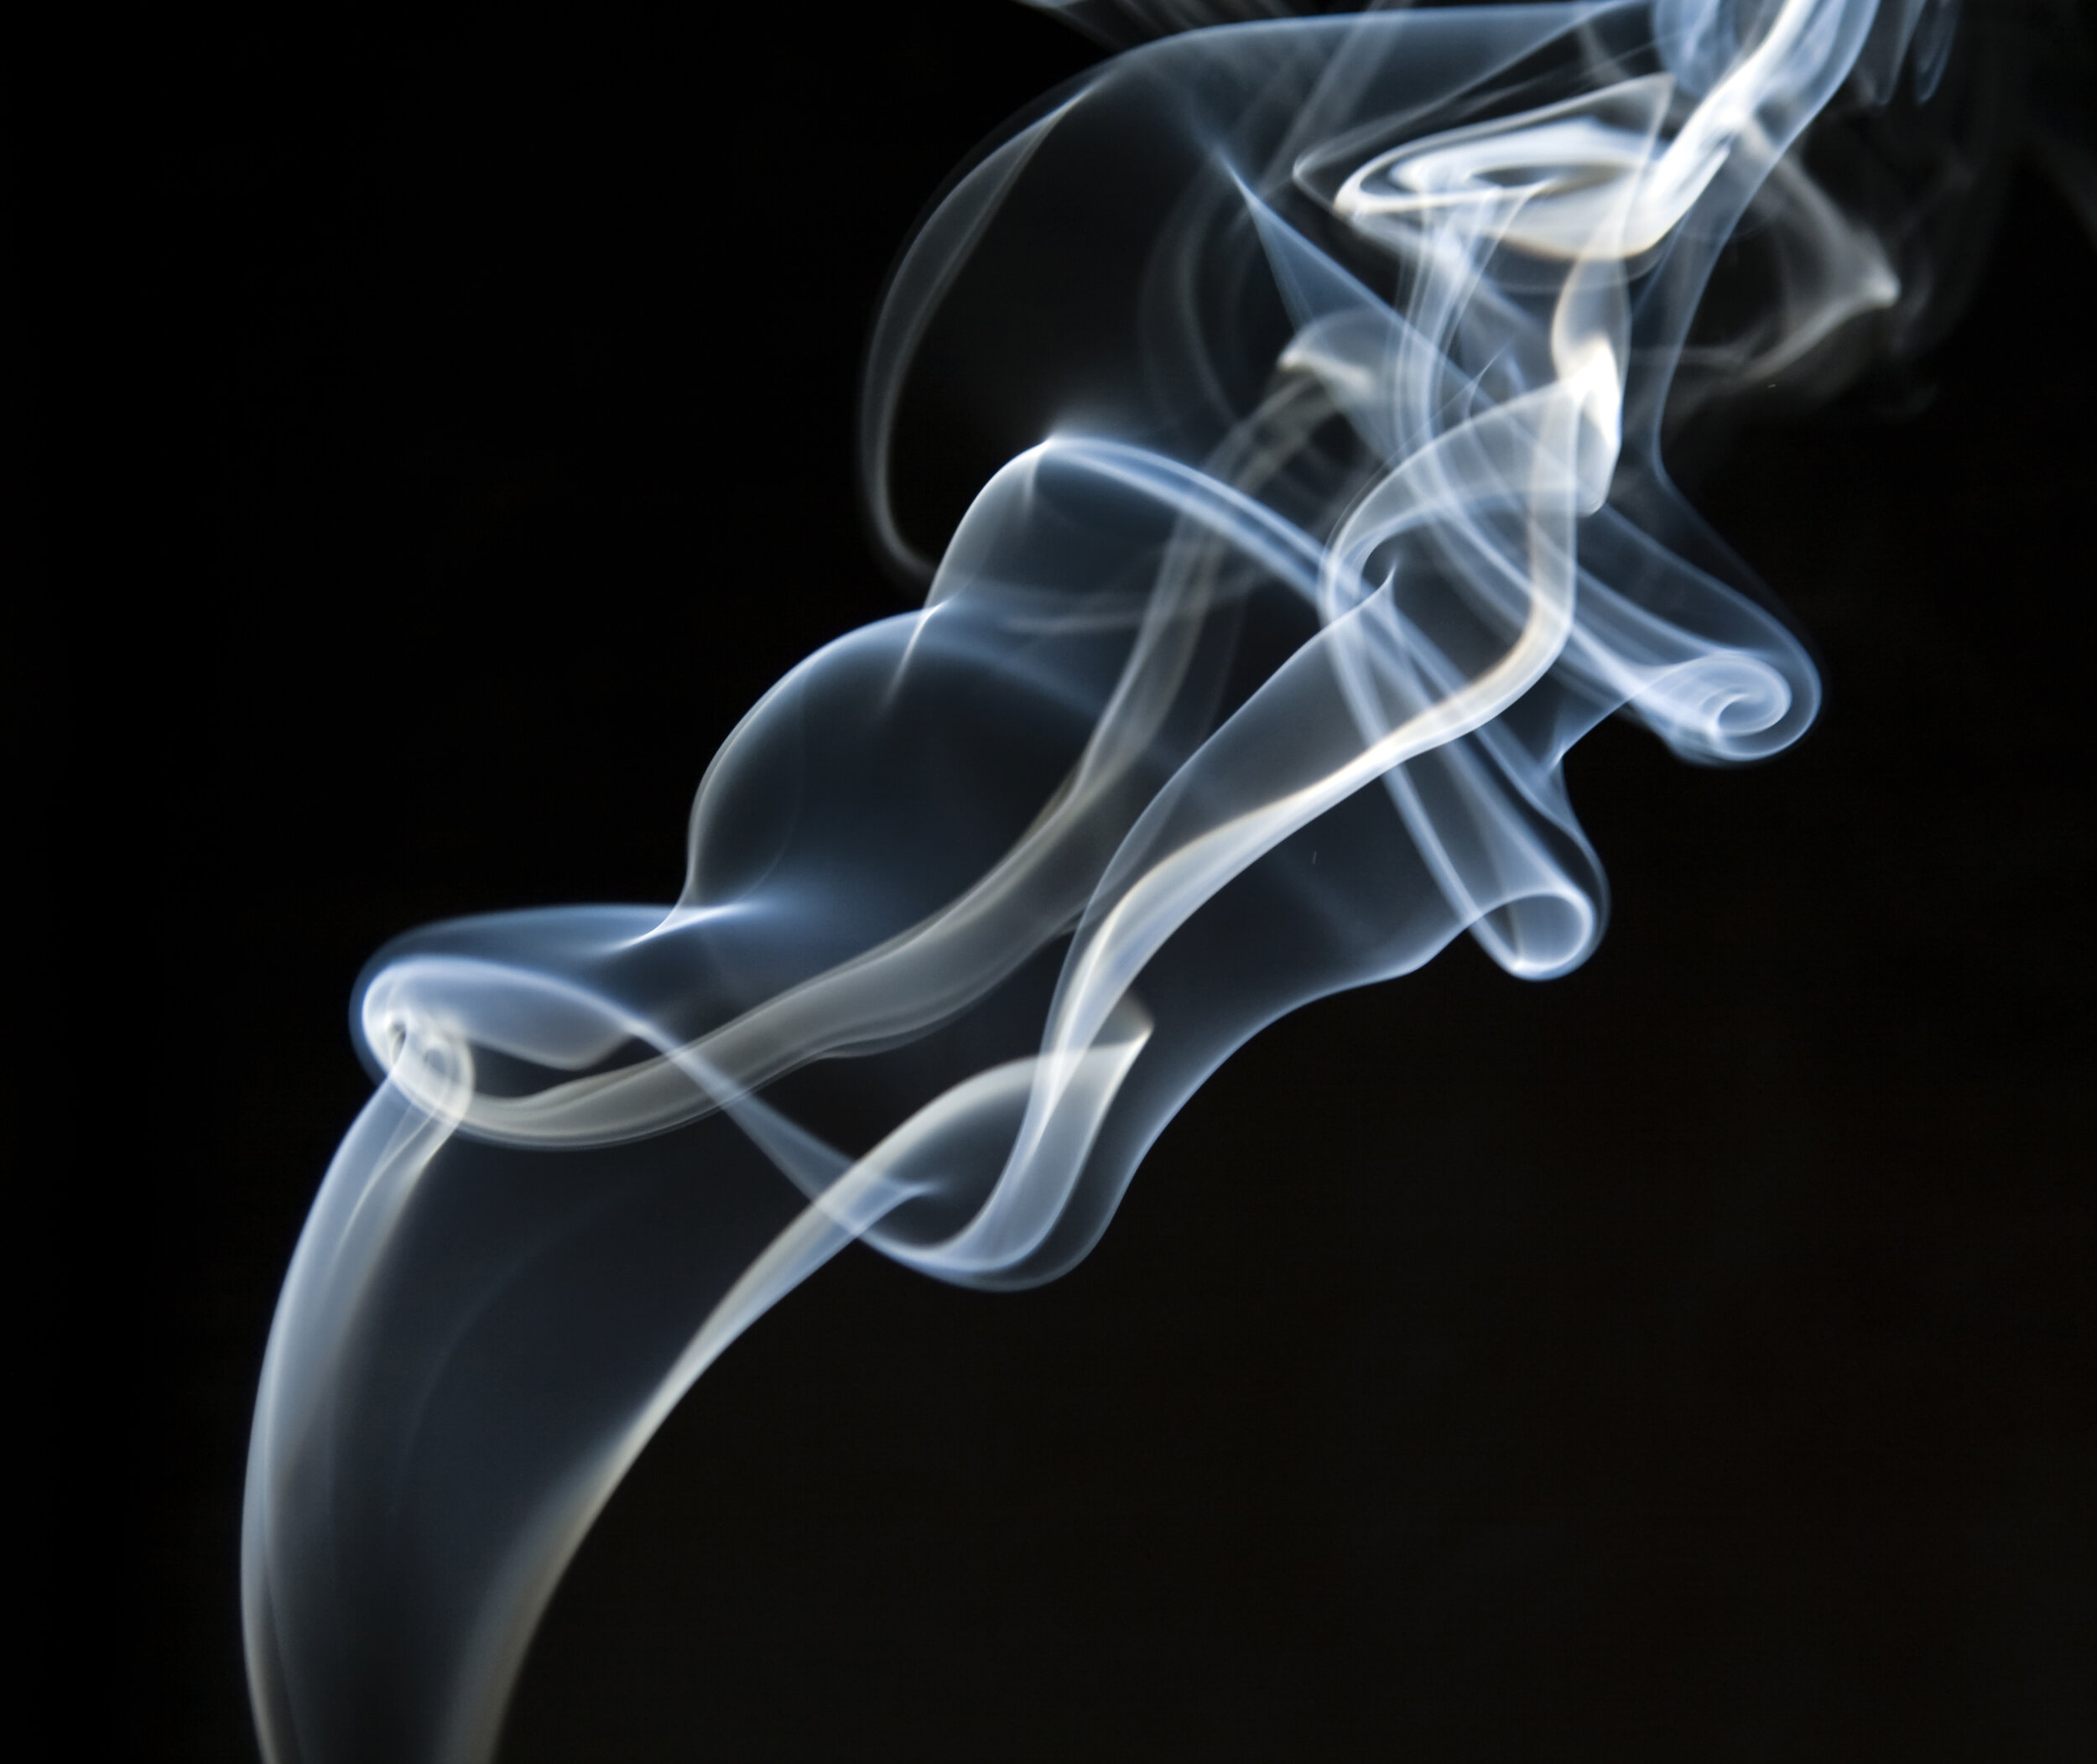 INHALATION: VAPORZED / SMOKED FLOWER, OILS & EXTRACTS  When cannabis is inhaled, the gasses enter the lungs before absorbing into the bloodstream. There are currently two prevalent types of inhalation methods: smoking and vaporizing.